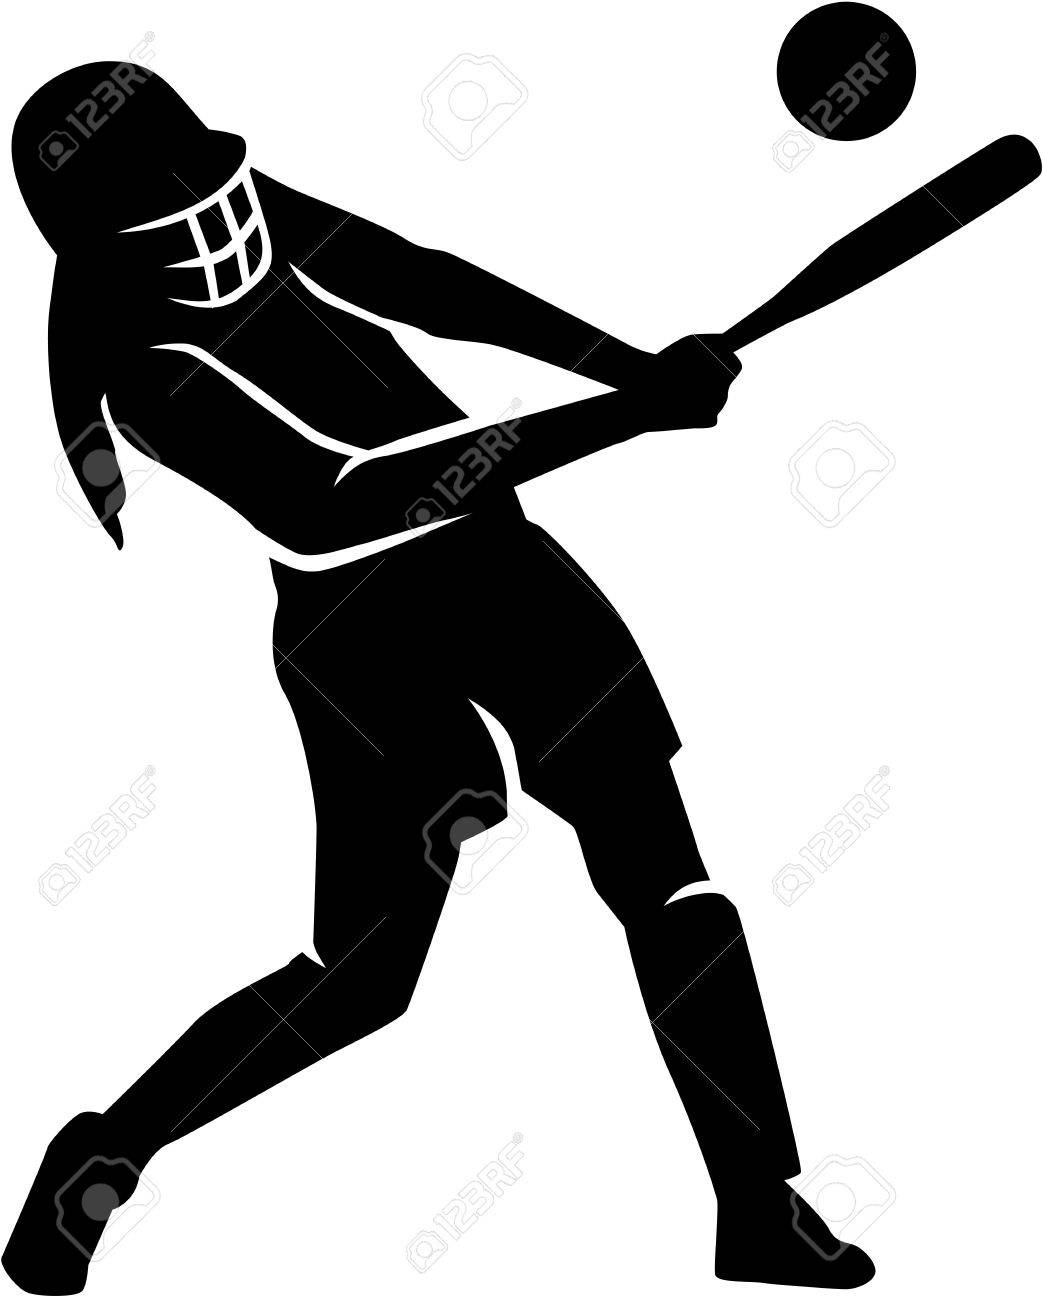 Softball Hitting Clipart.